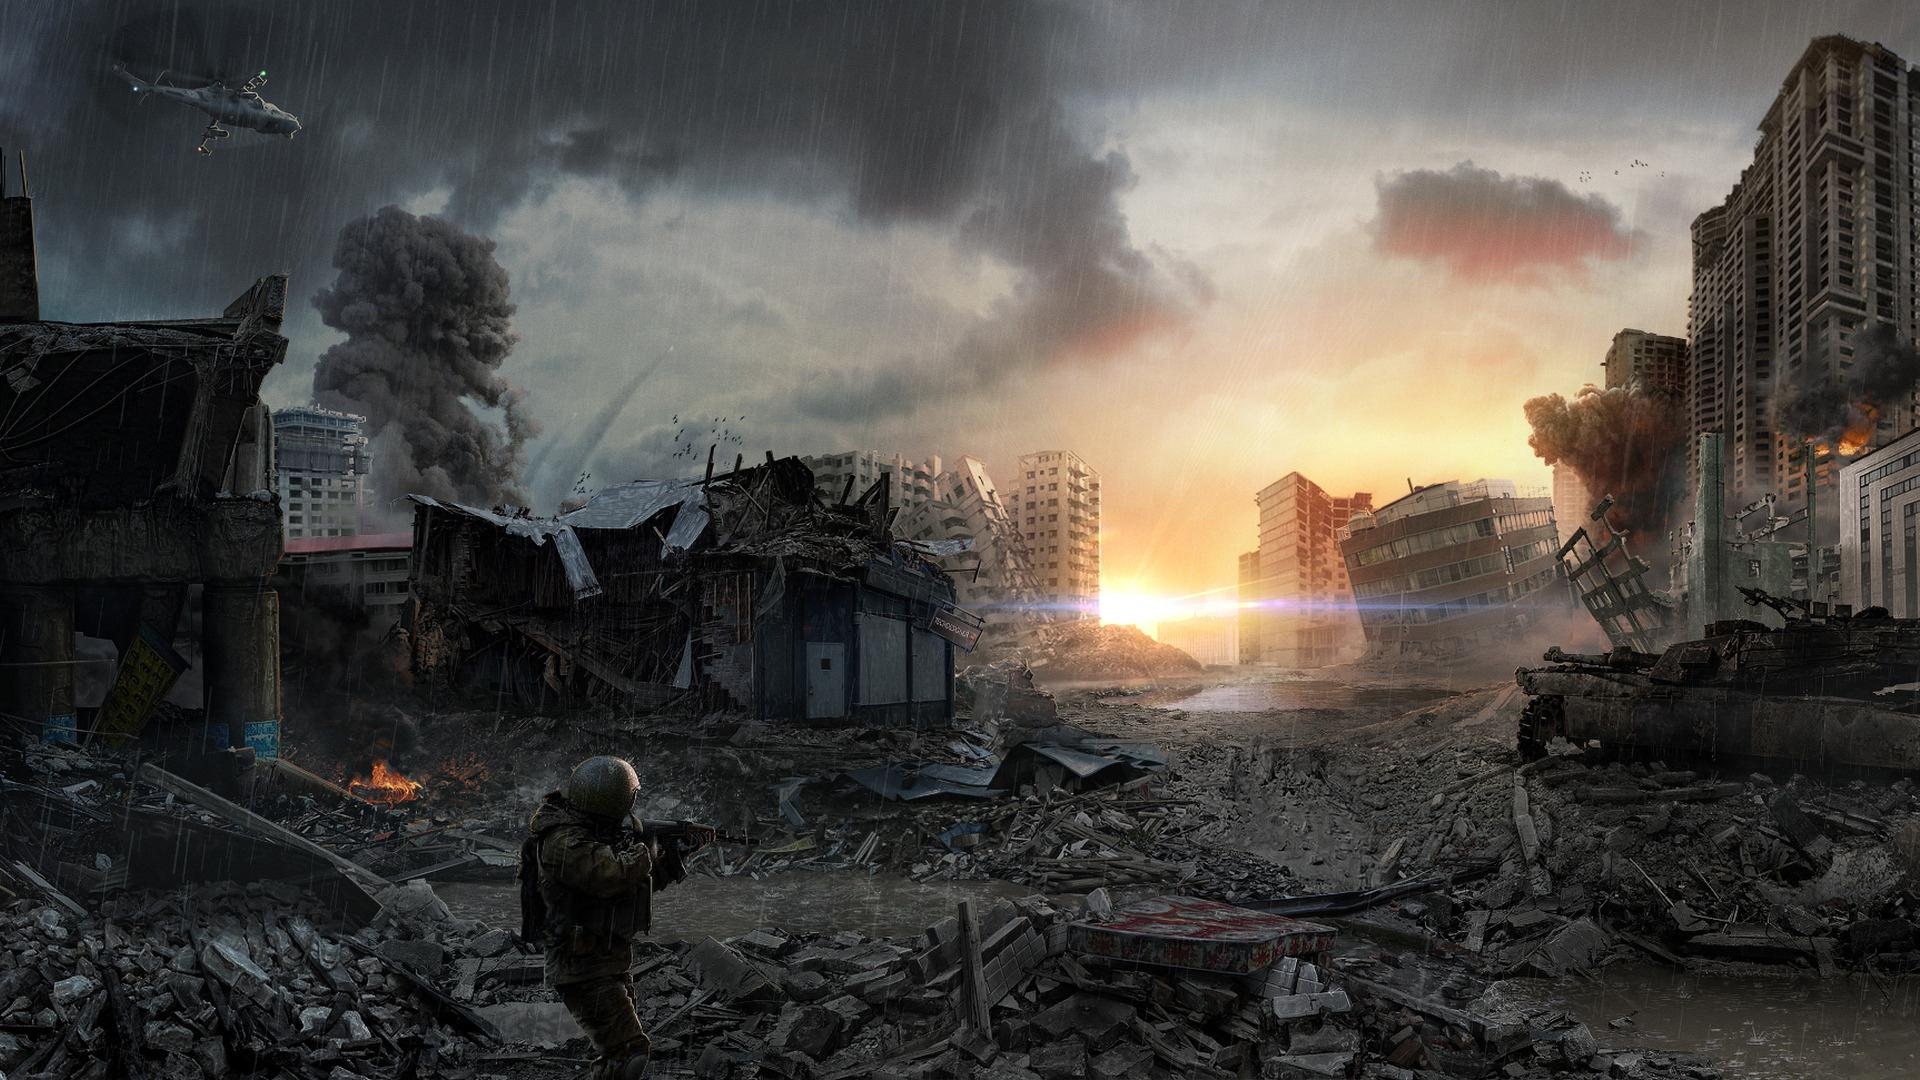 Apocalyptic-Backgrounds-TheASGproject-wallpaper-wp4802200